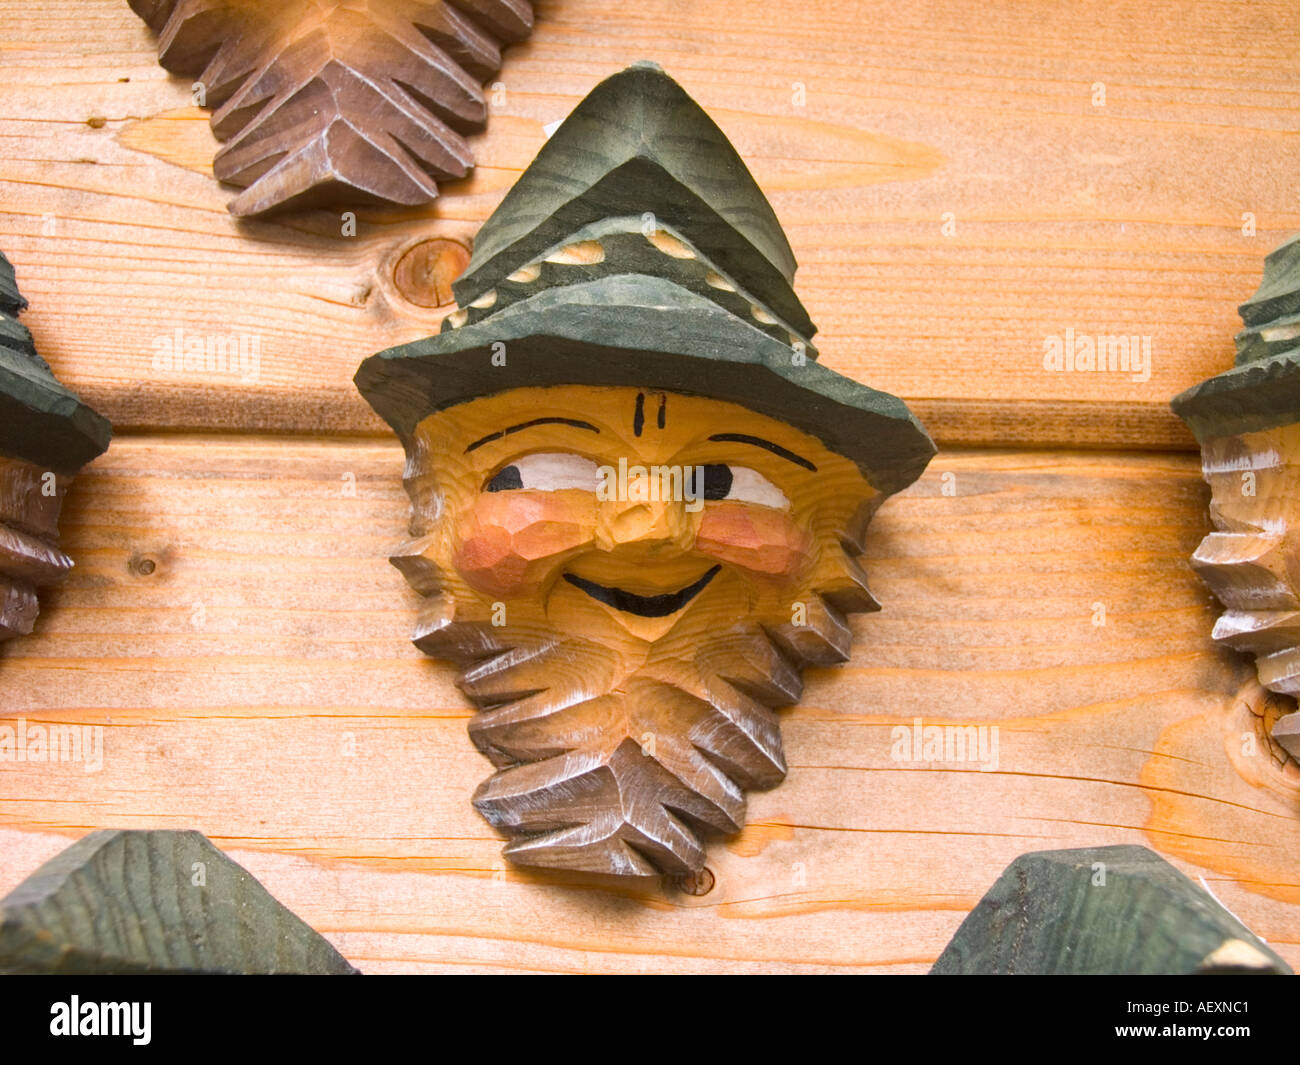 Wood carving wooden face old man elderly mustache mustache